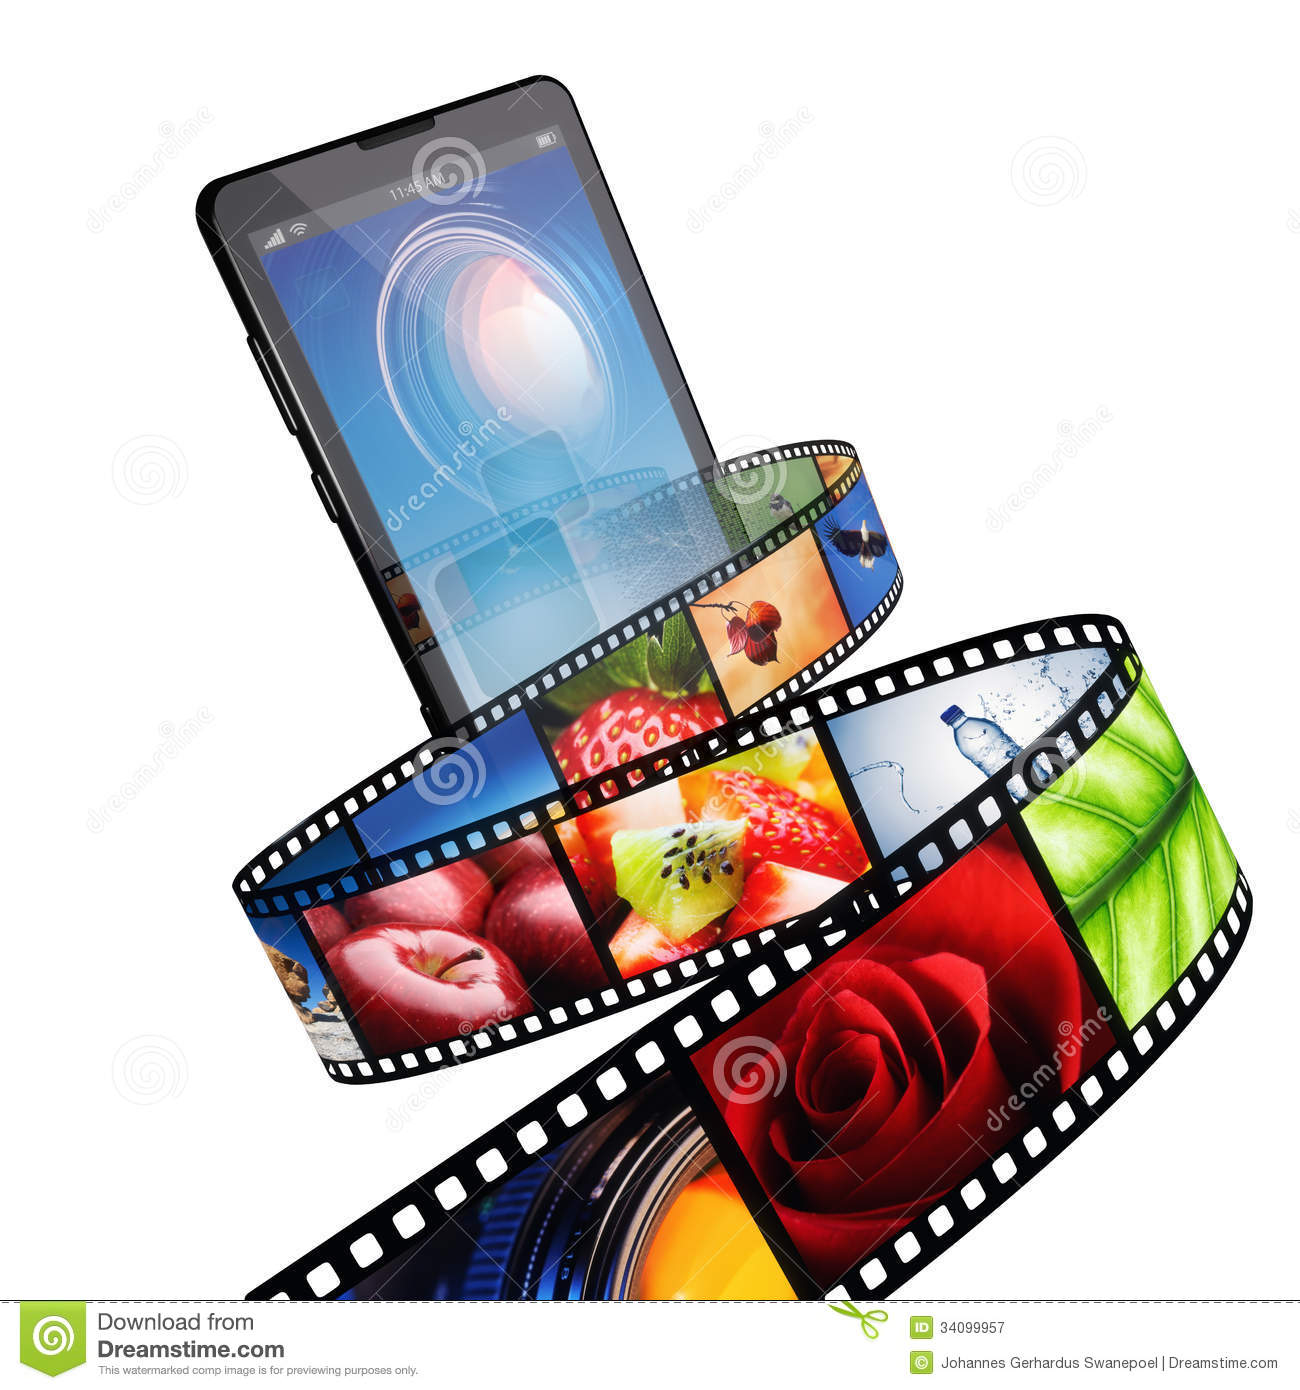 streaming-video-modern-mobile-phone-isolated-white-34099957.jpg